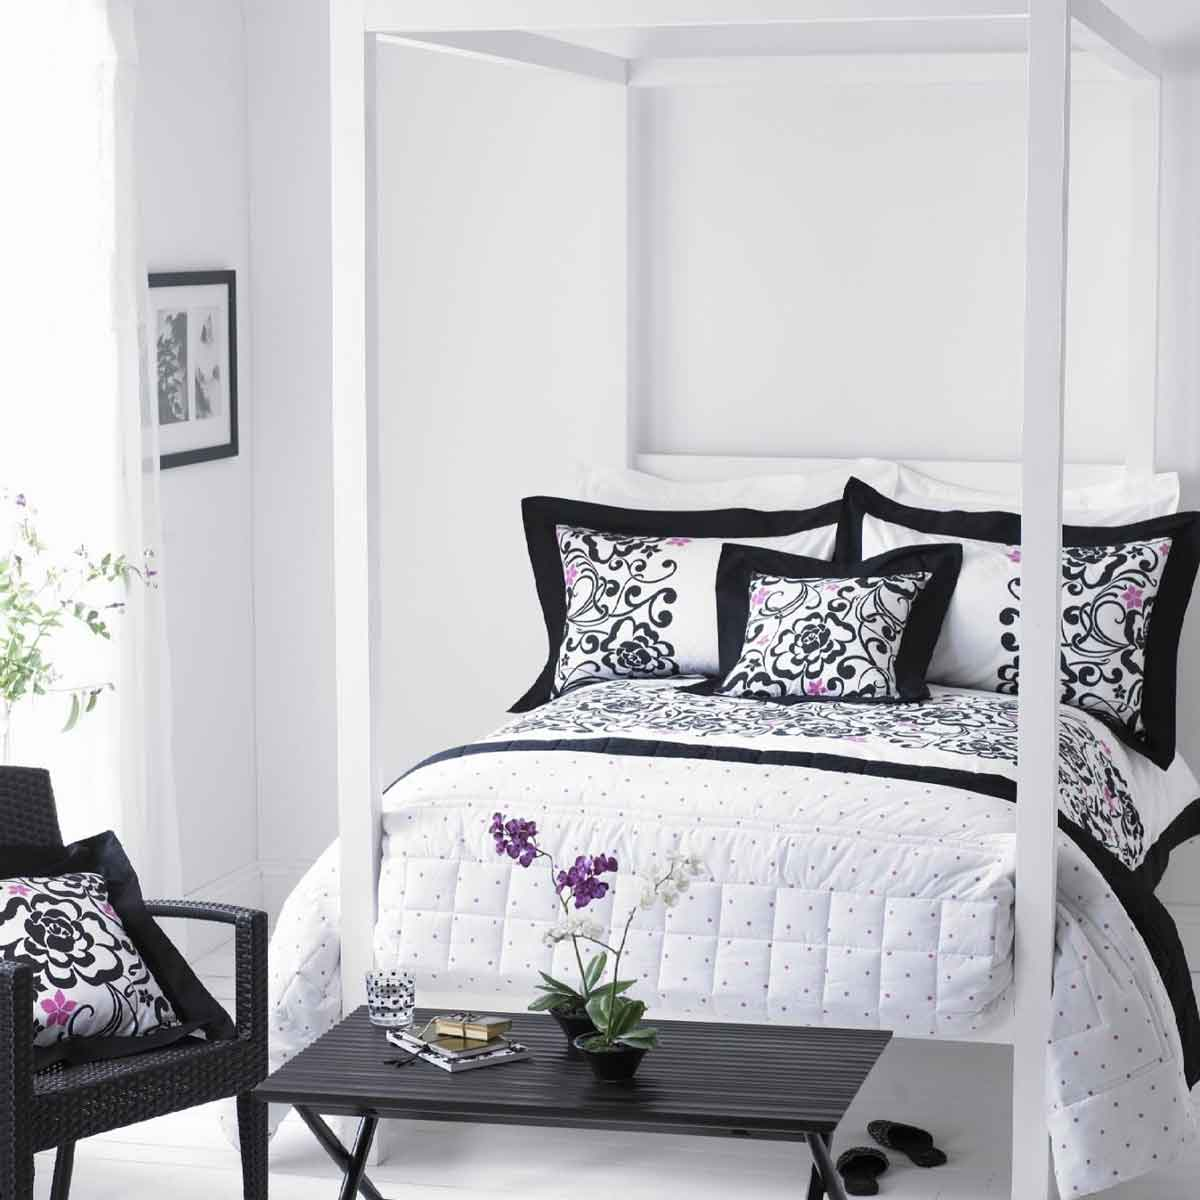 Black And White Bedroom Ideas With Bed And Pretty Bedding Set Plus Wooden  Table And Chairs